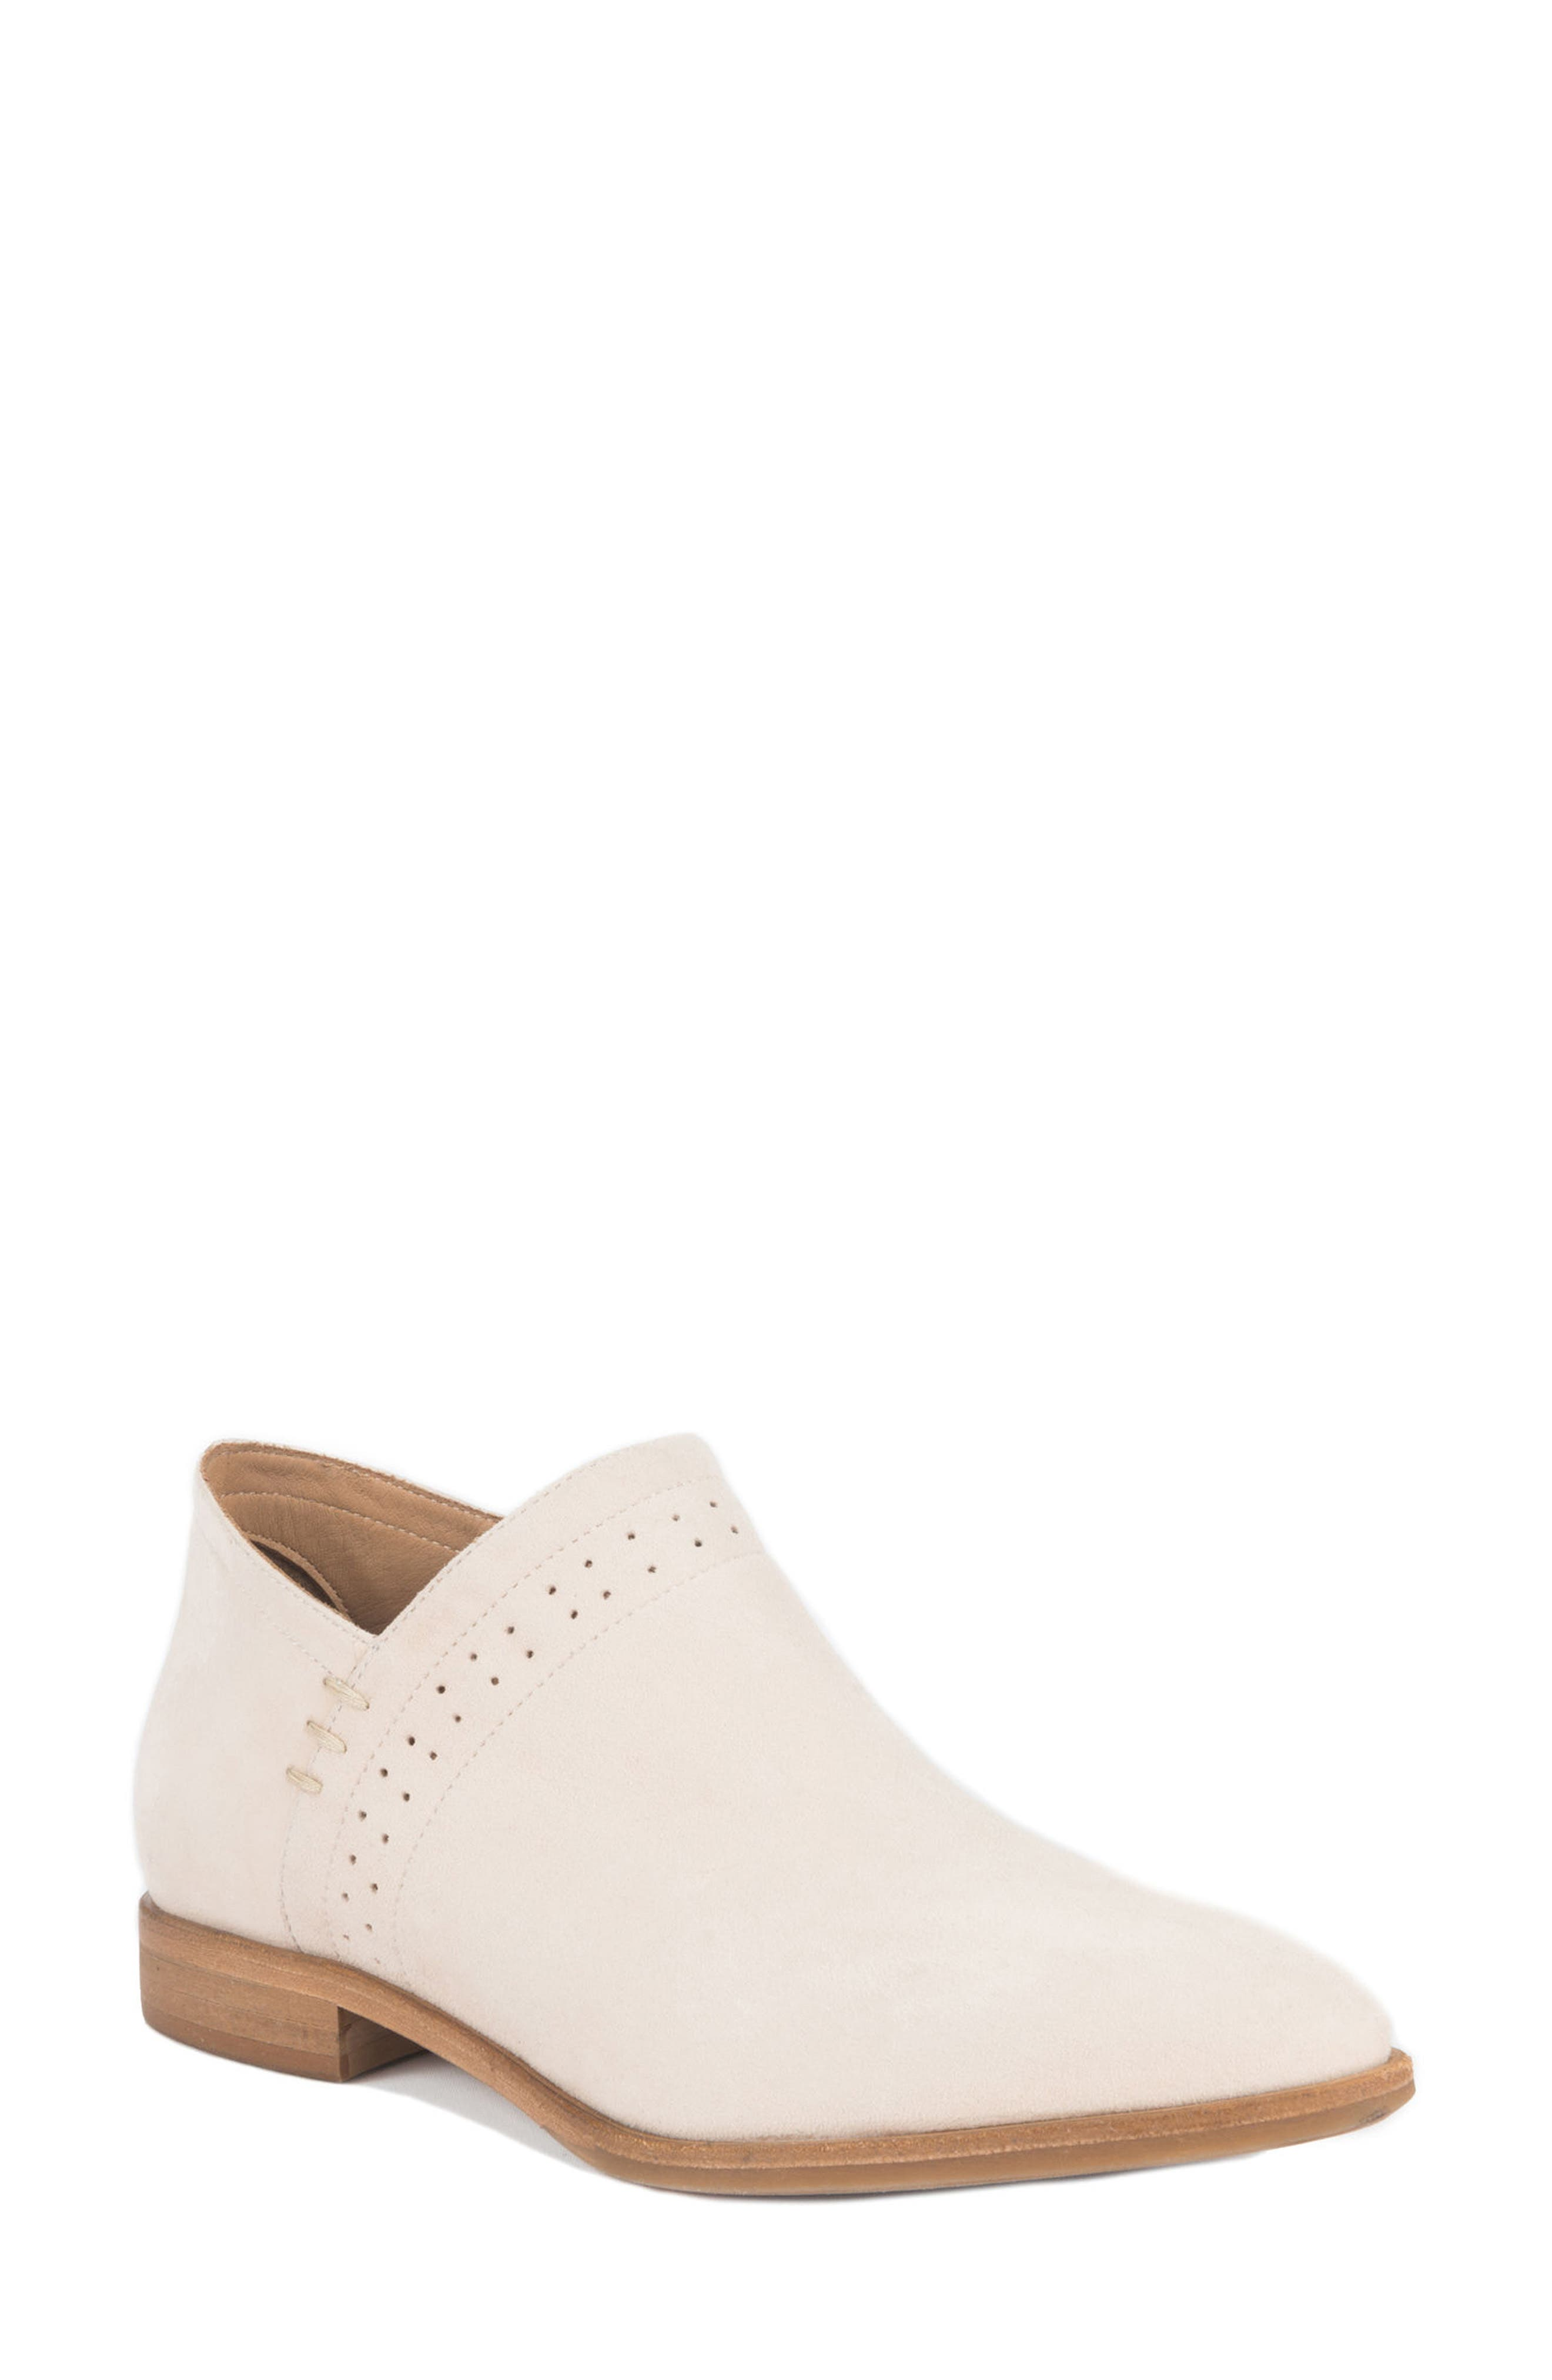 Florence Water Resistant Bootie,                         Main,                         color, Bone